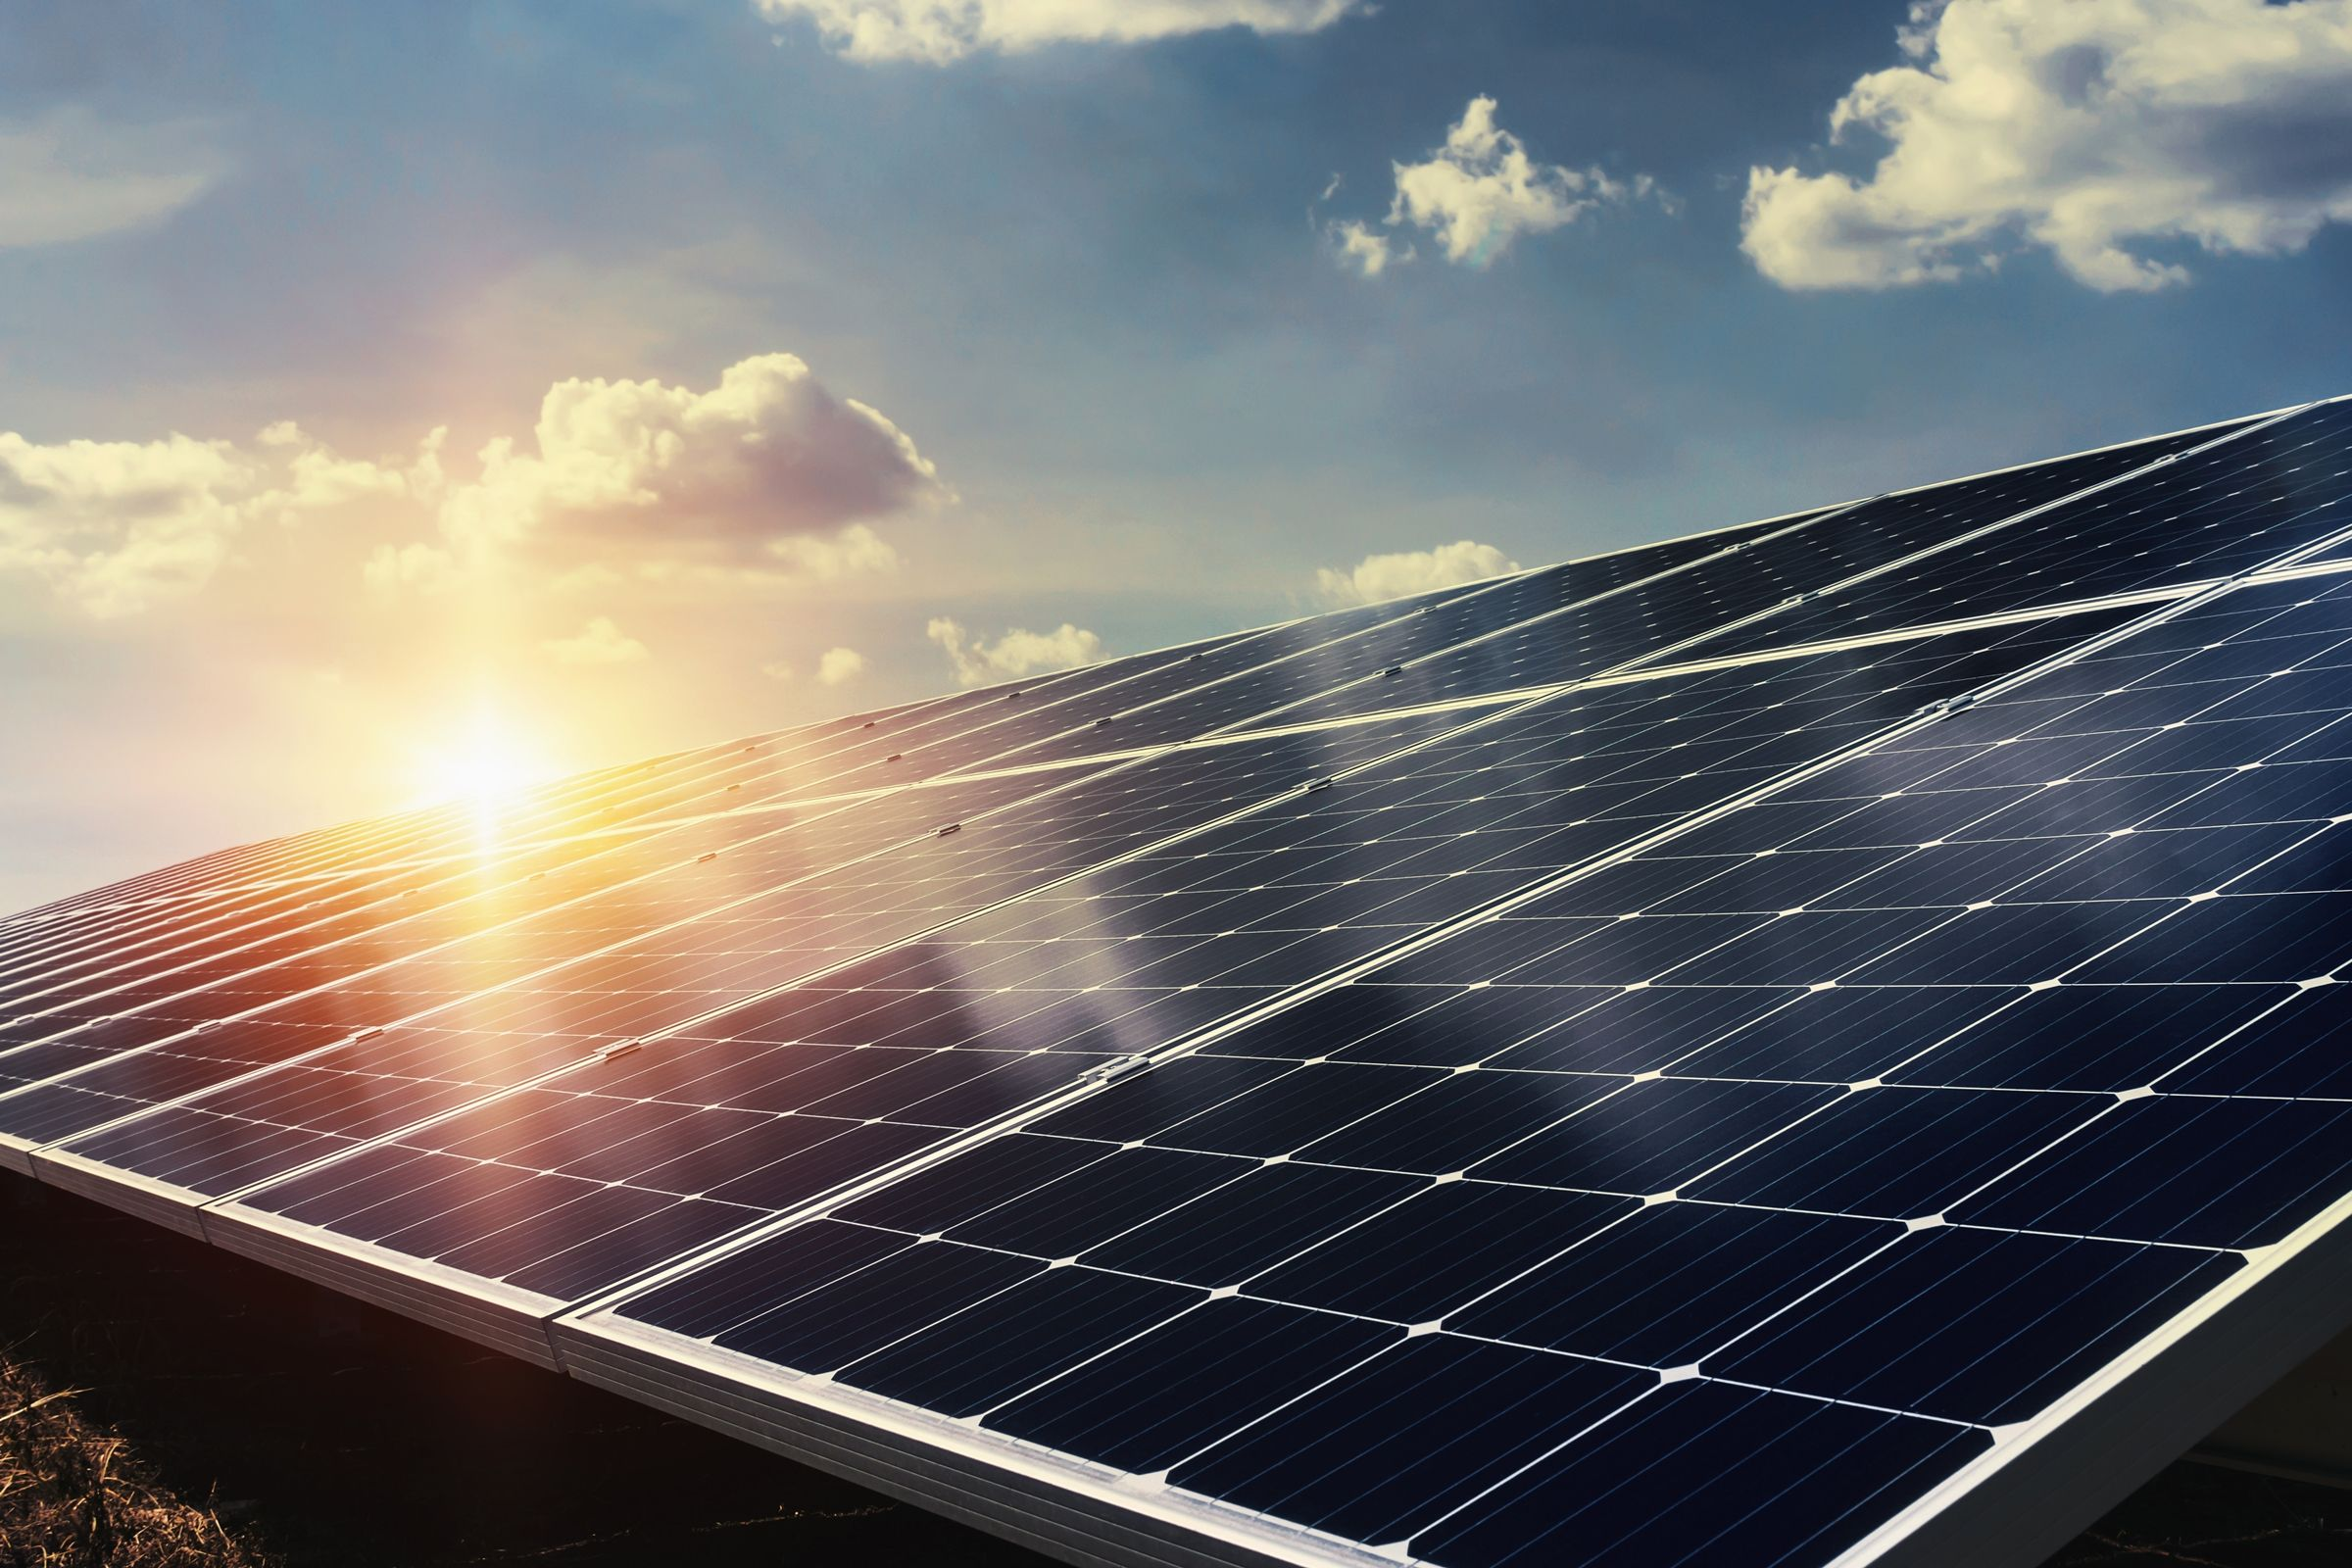 2019 Was A Busy Year Compared To All Other Energy Sources Solar Generated Electricity Enjo In 2020 Solar Panel Cost Solar Panels For Sale Renewable Sources Of Energy